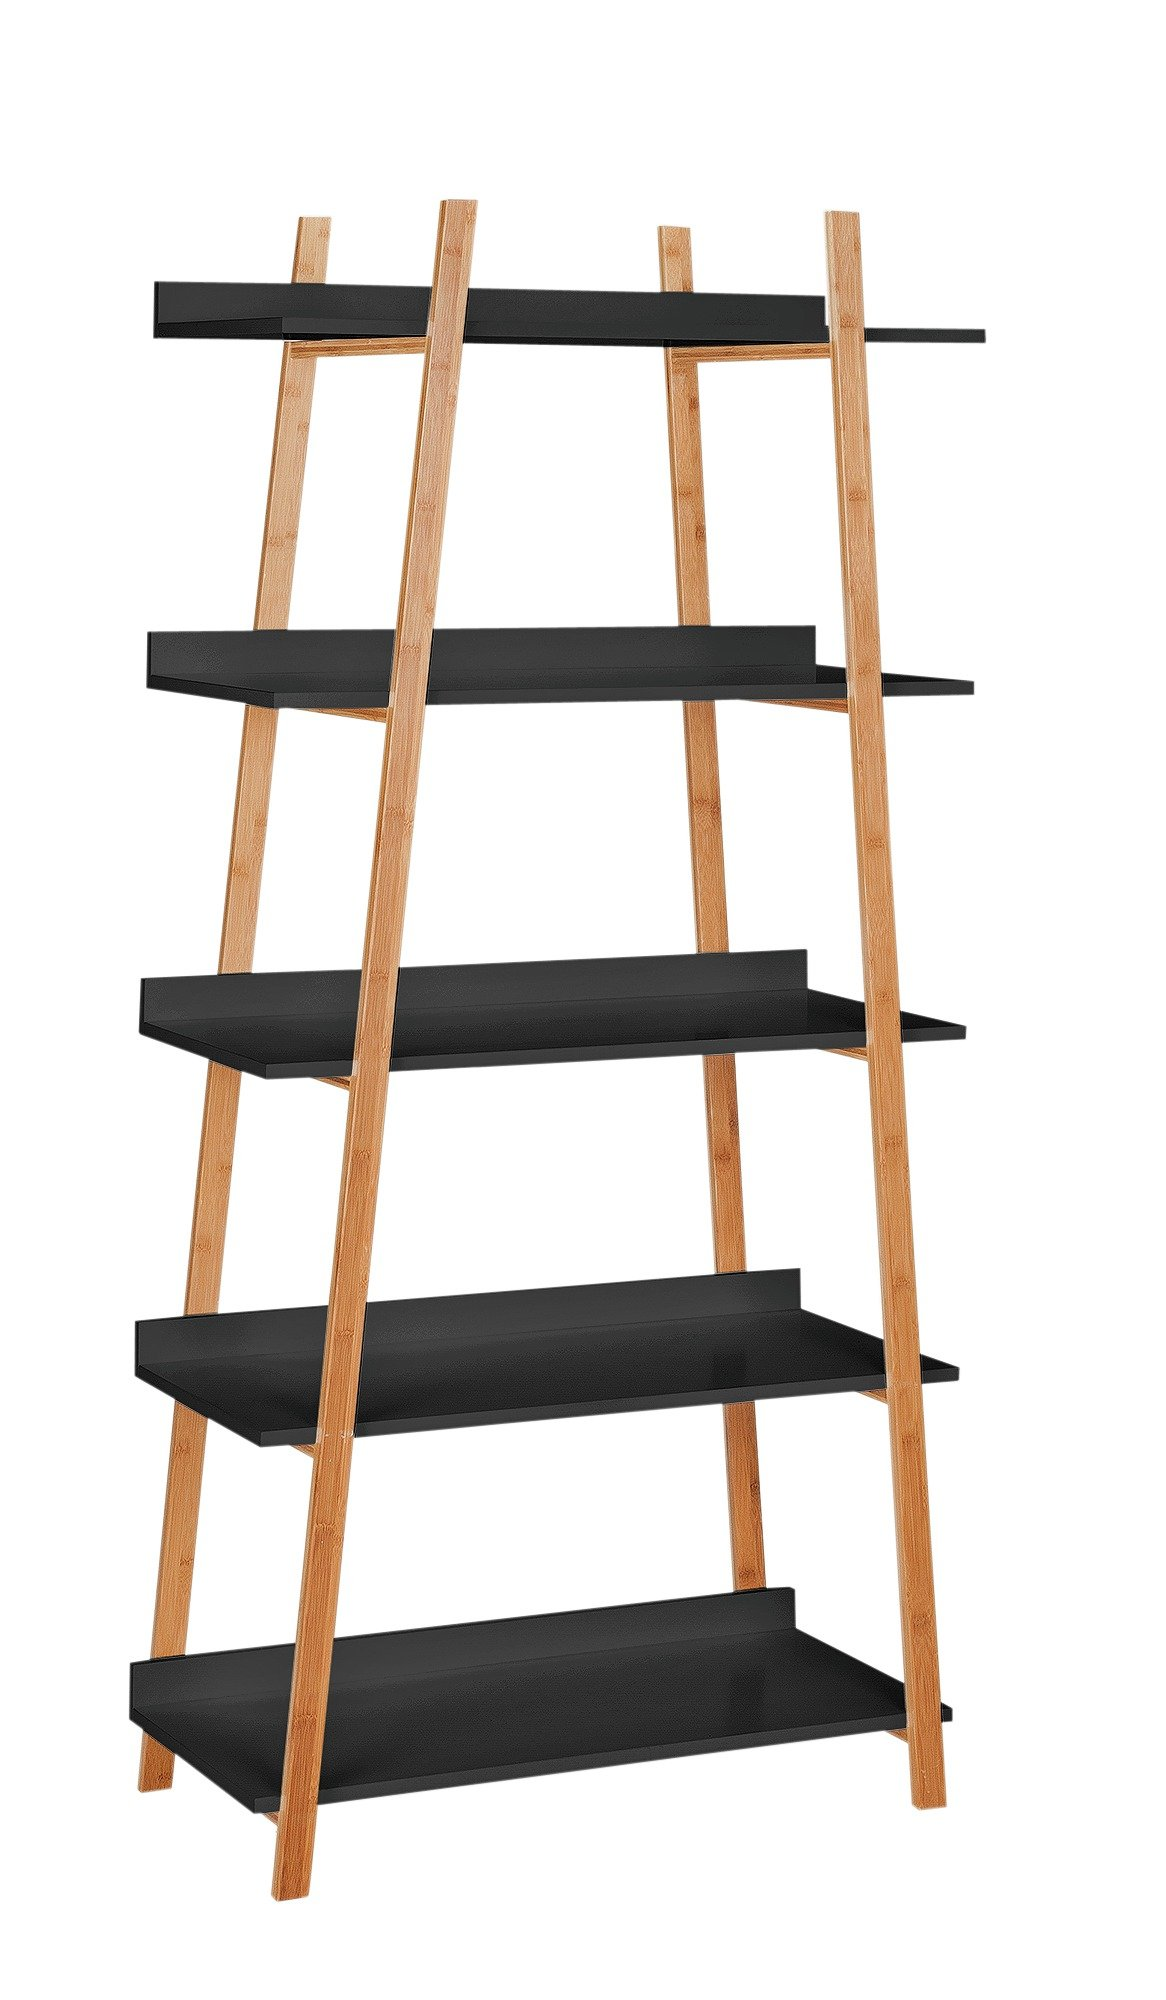 Hygena Skanda 5 Tier Bamboo Shelving Unit - Black